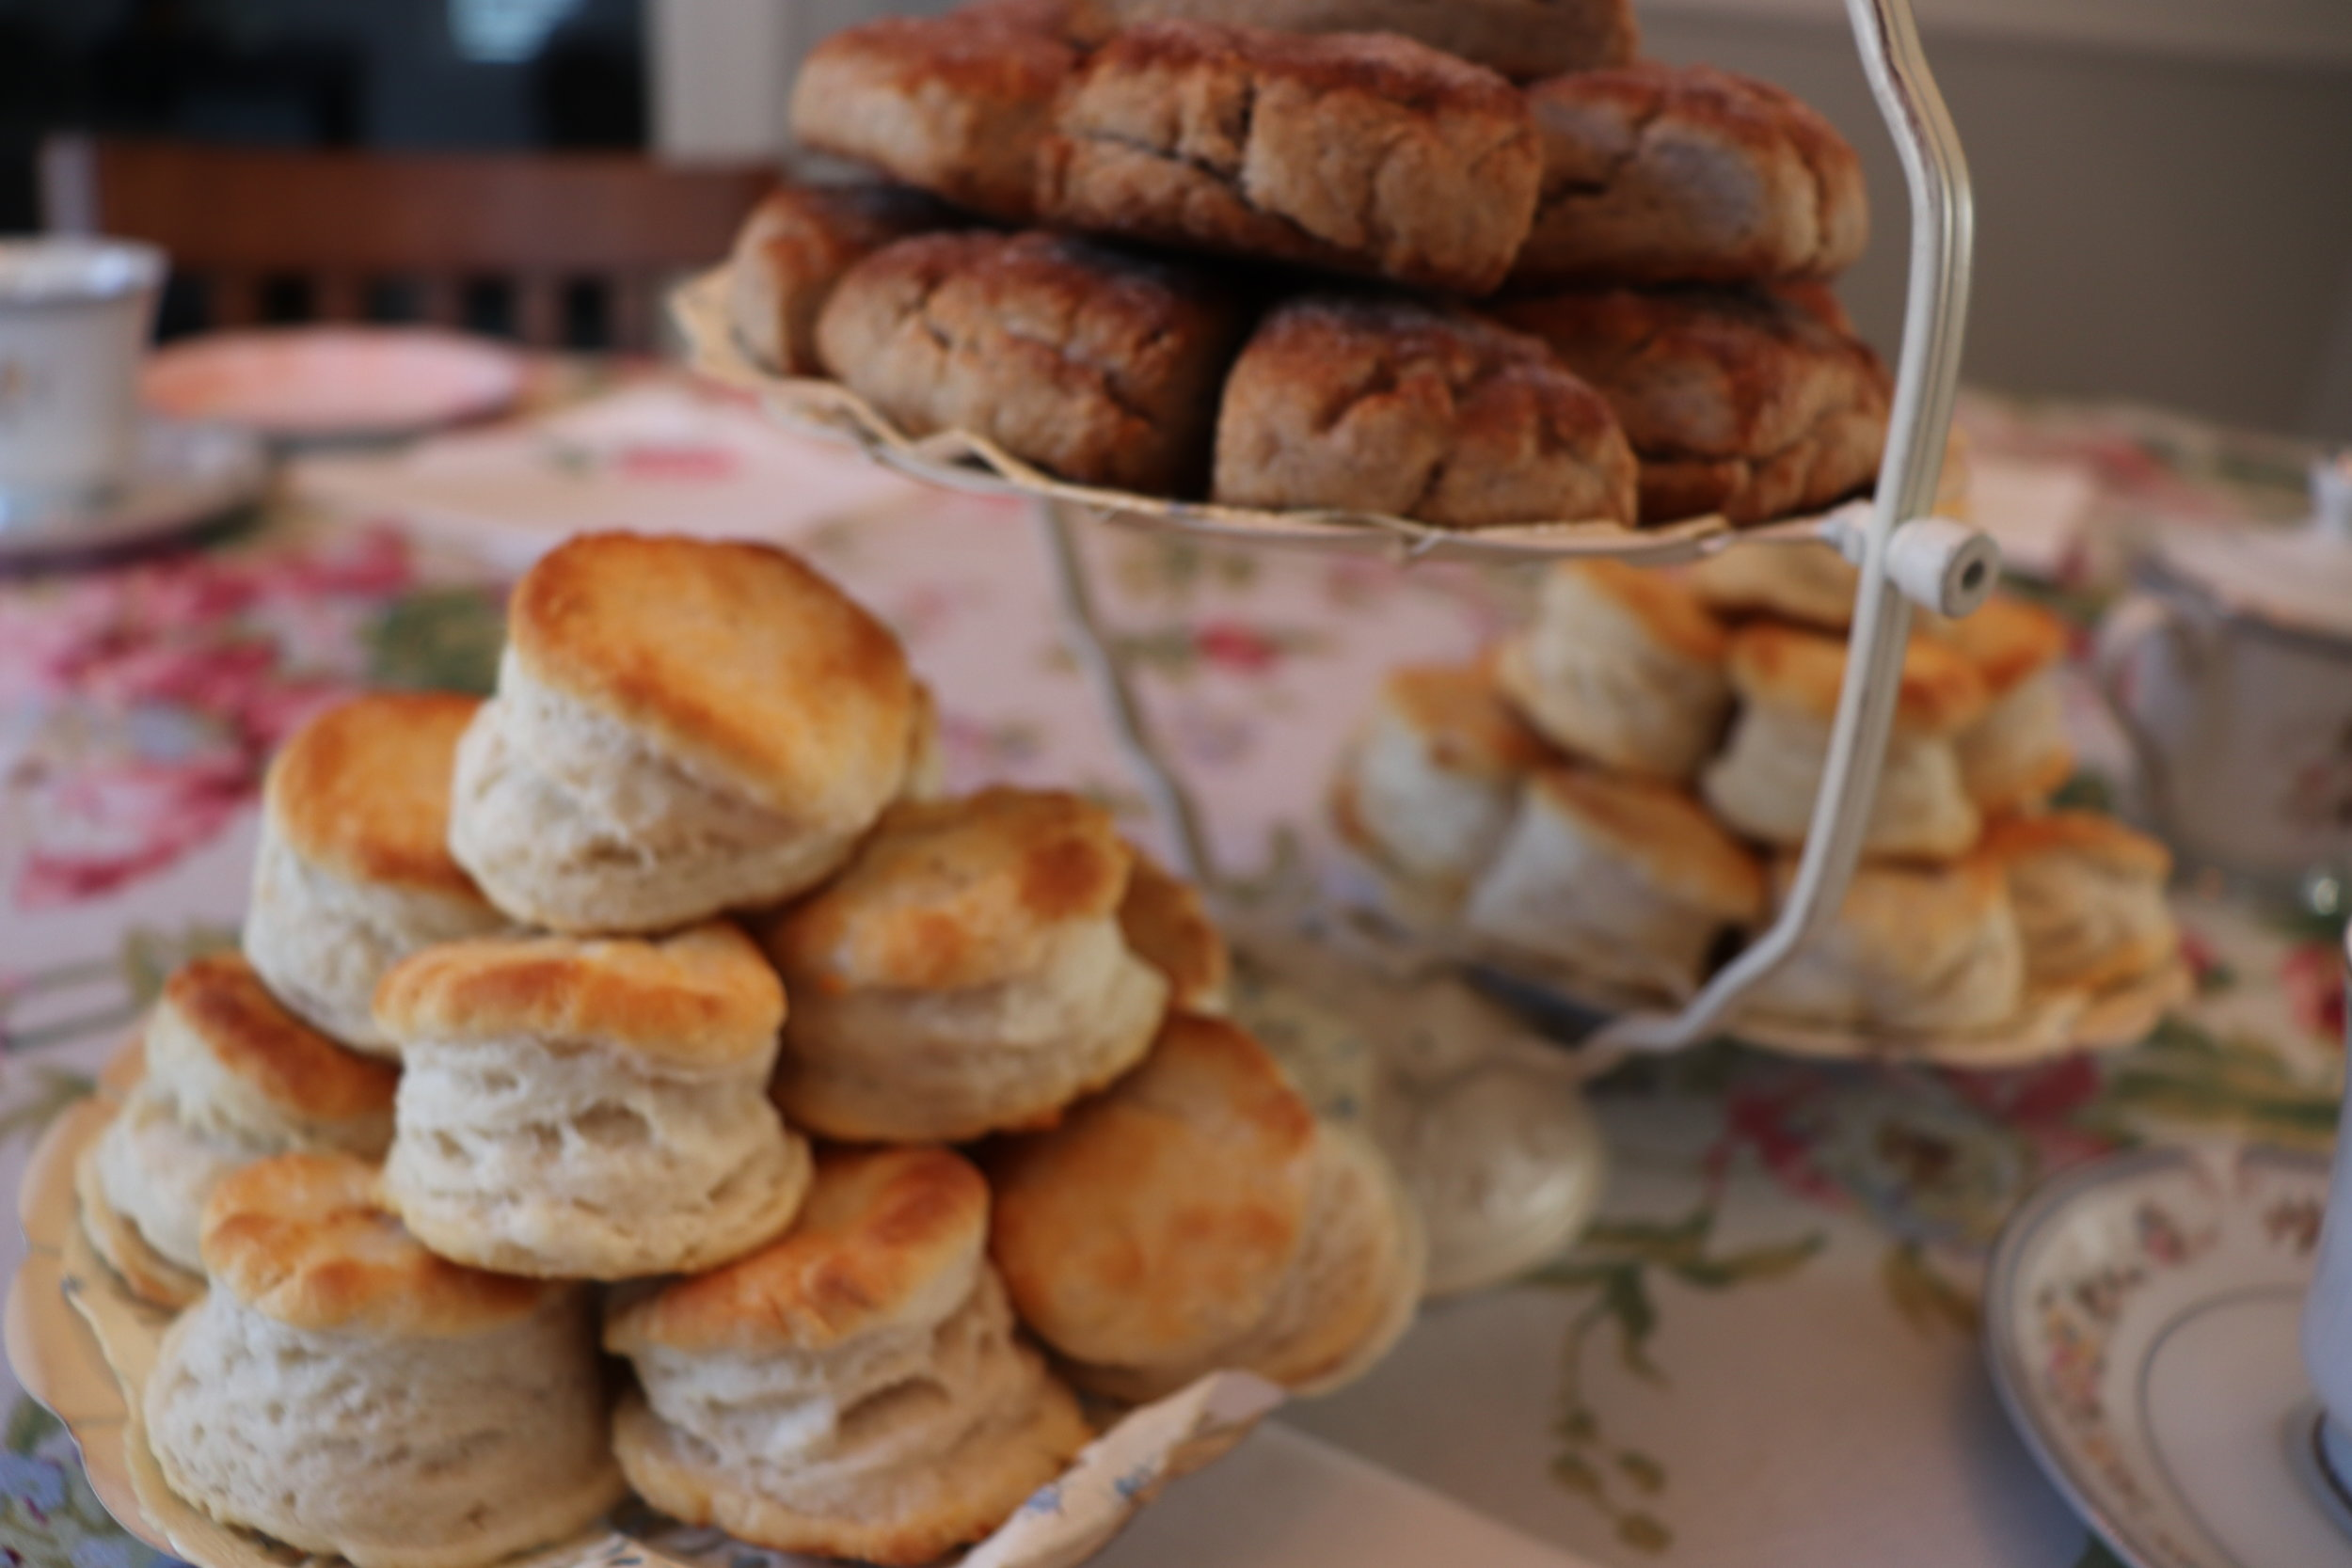 Biscuit and scone course